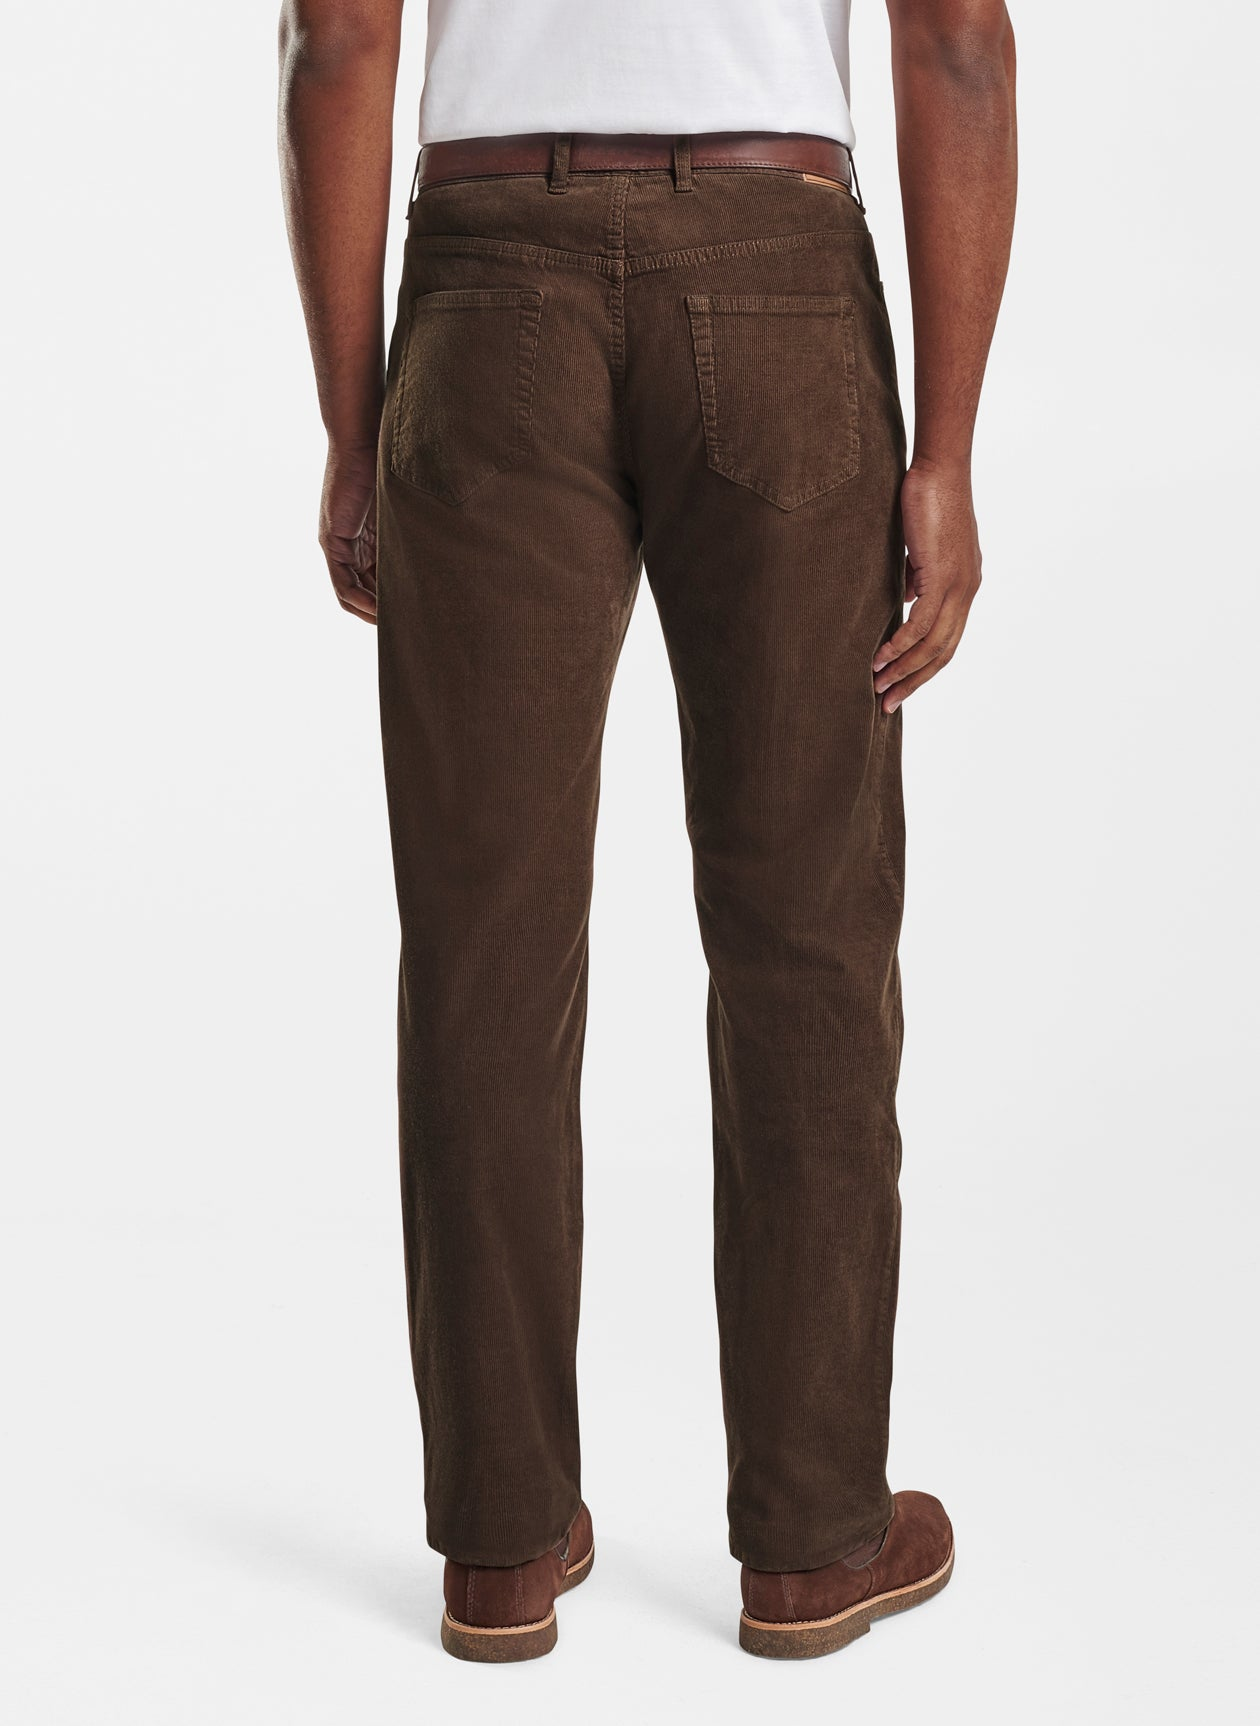 Superior Soft Corduroy Five-Pocket Pant - Carob Brown